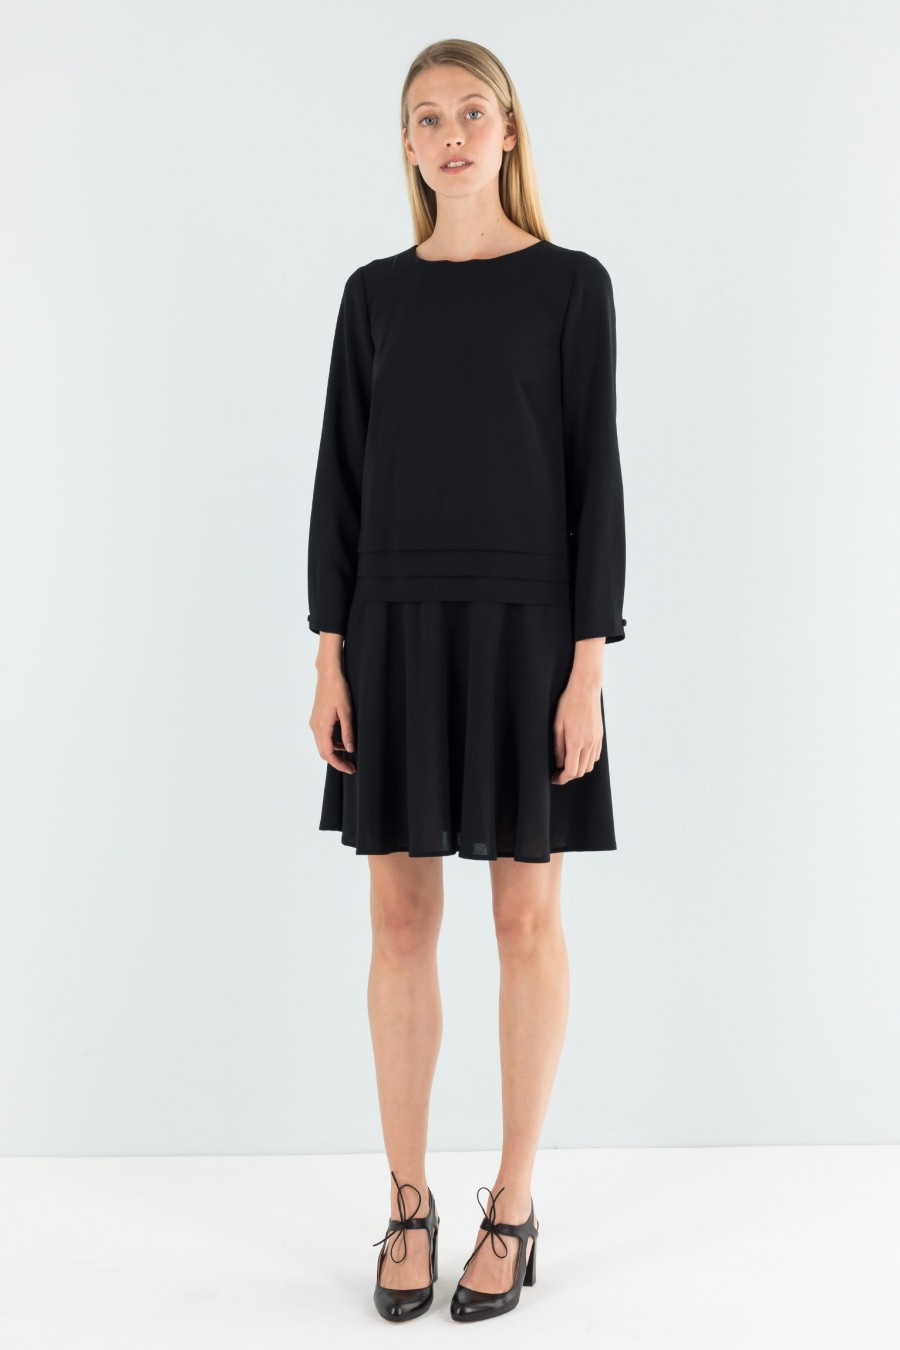 Lazzari fall black dress